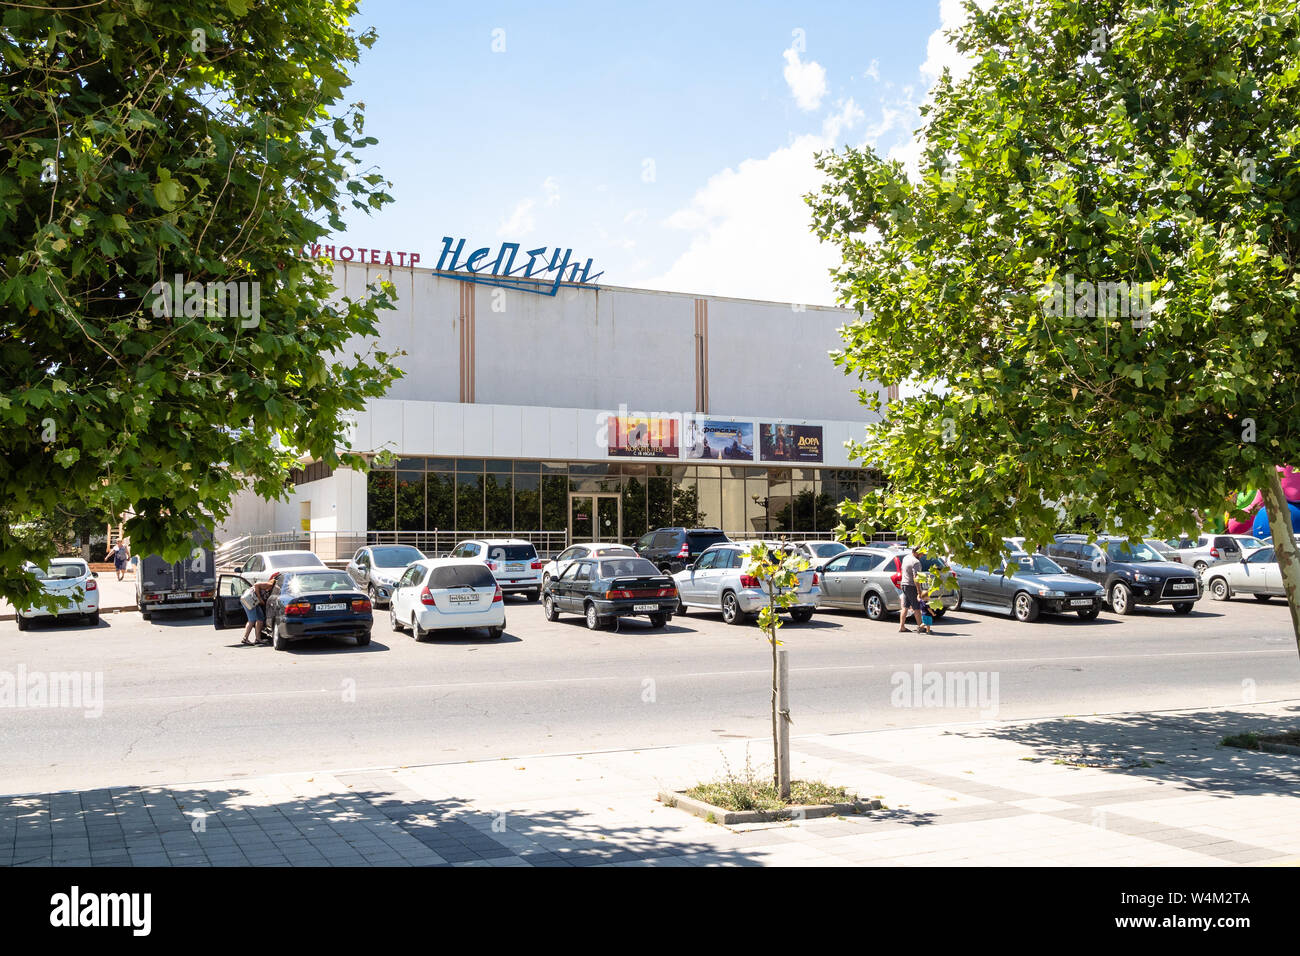 Novorossiysk Russia July 7 2019 People And Cars Near Neptun Cinema On Admiral Serebryakov Embankment Novorossiysk Is City In Krasnodar Krai Rus Stock Photo 261055434 Alamy